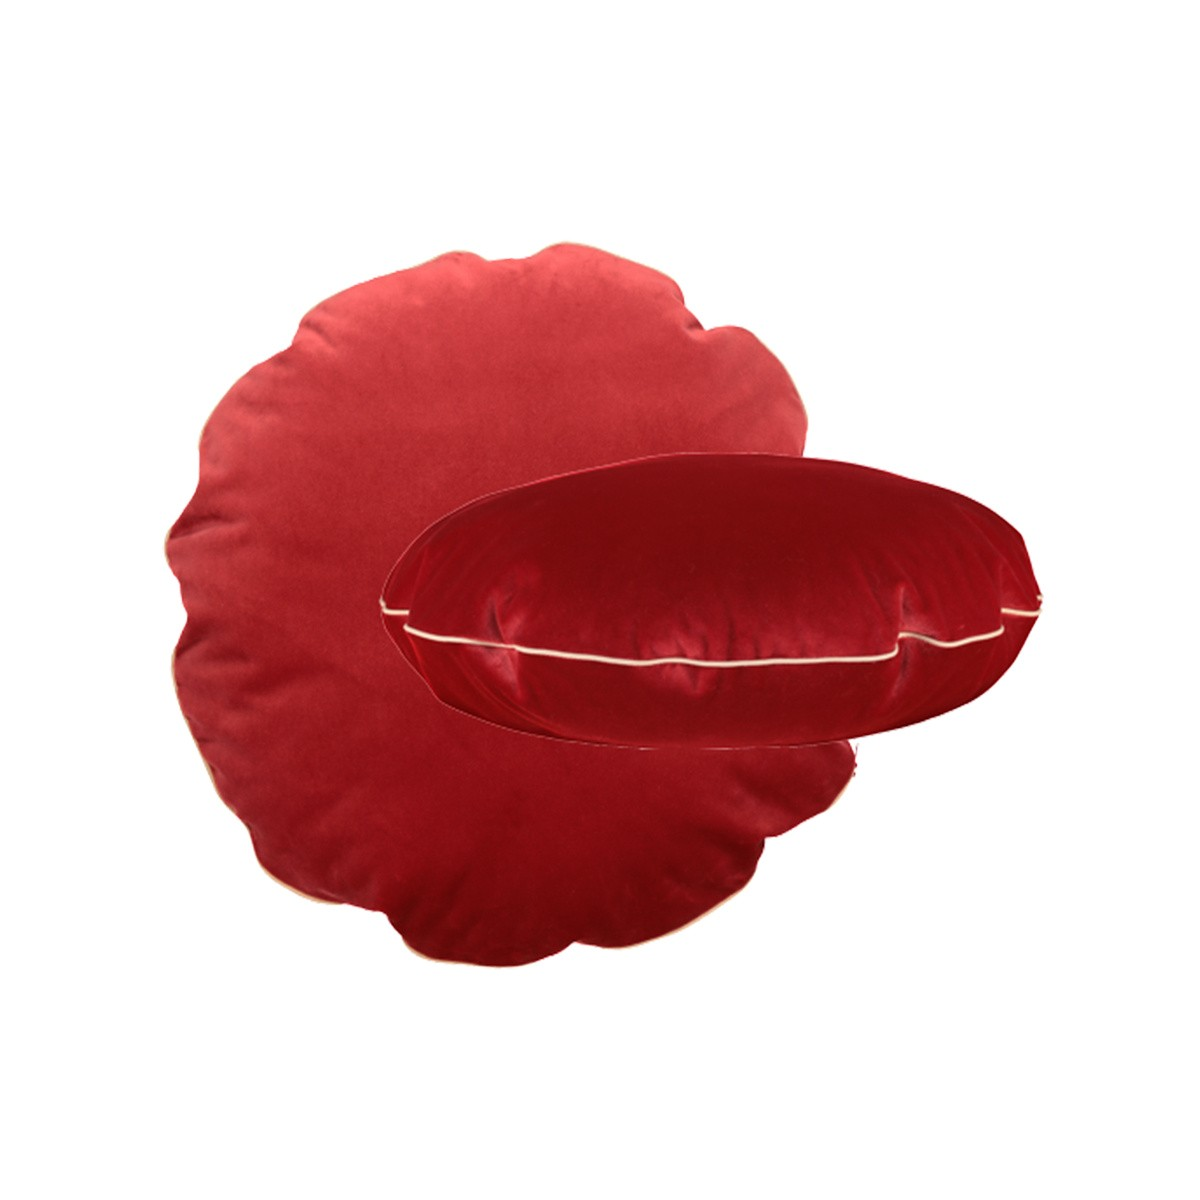 Bomboloni Cushion, Red Velvet